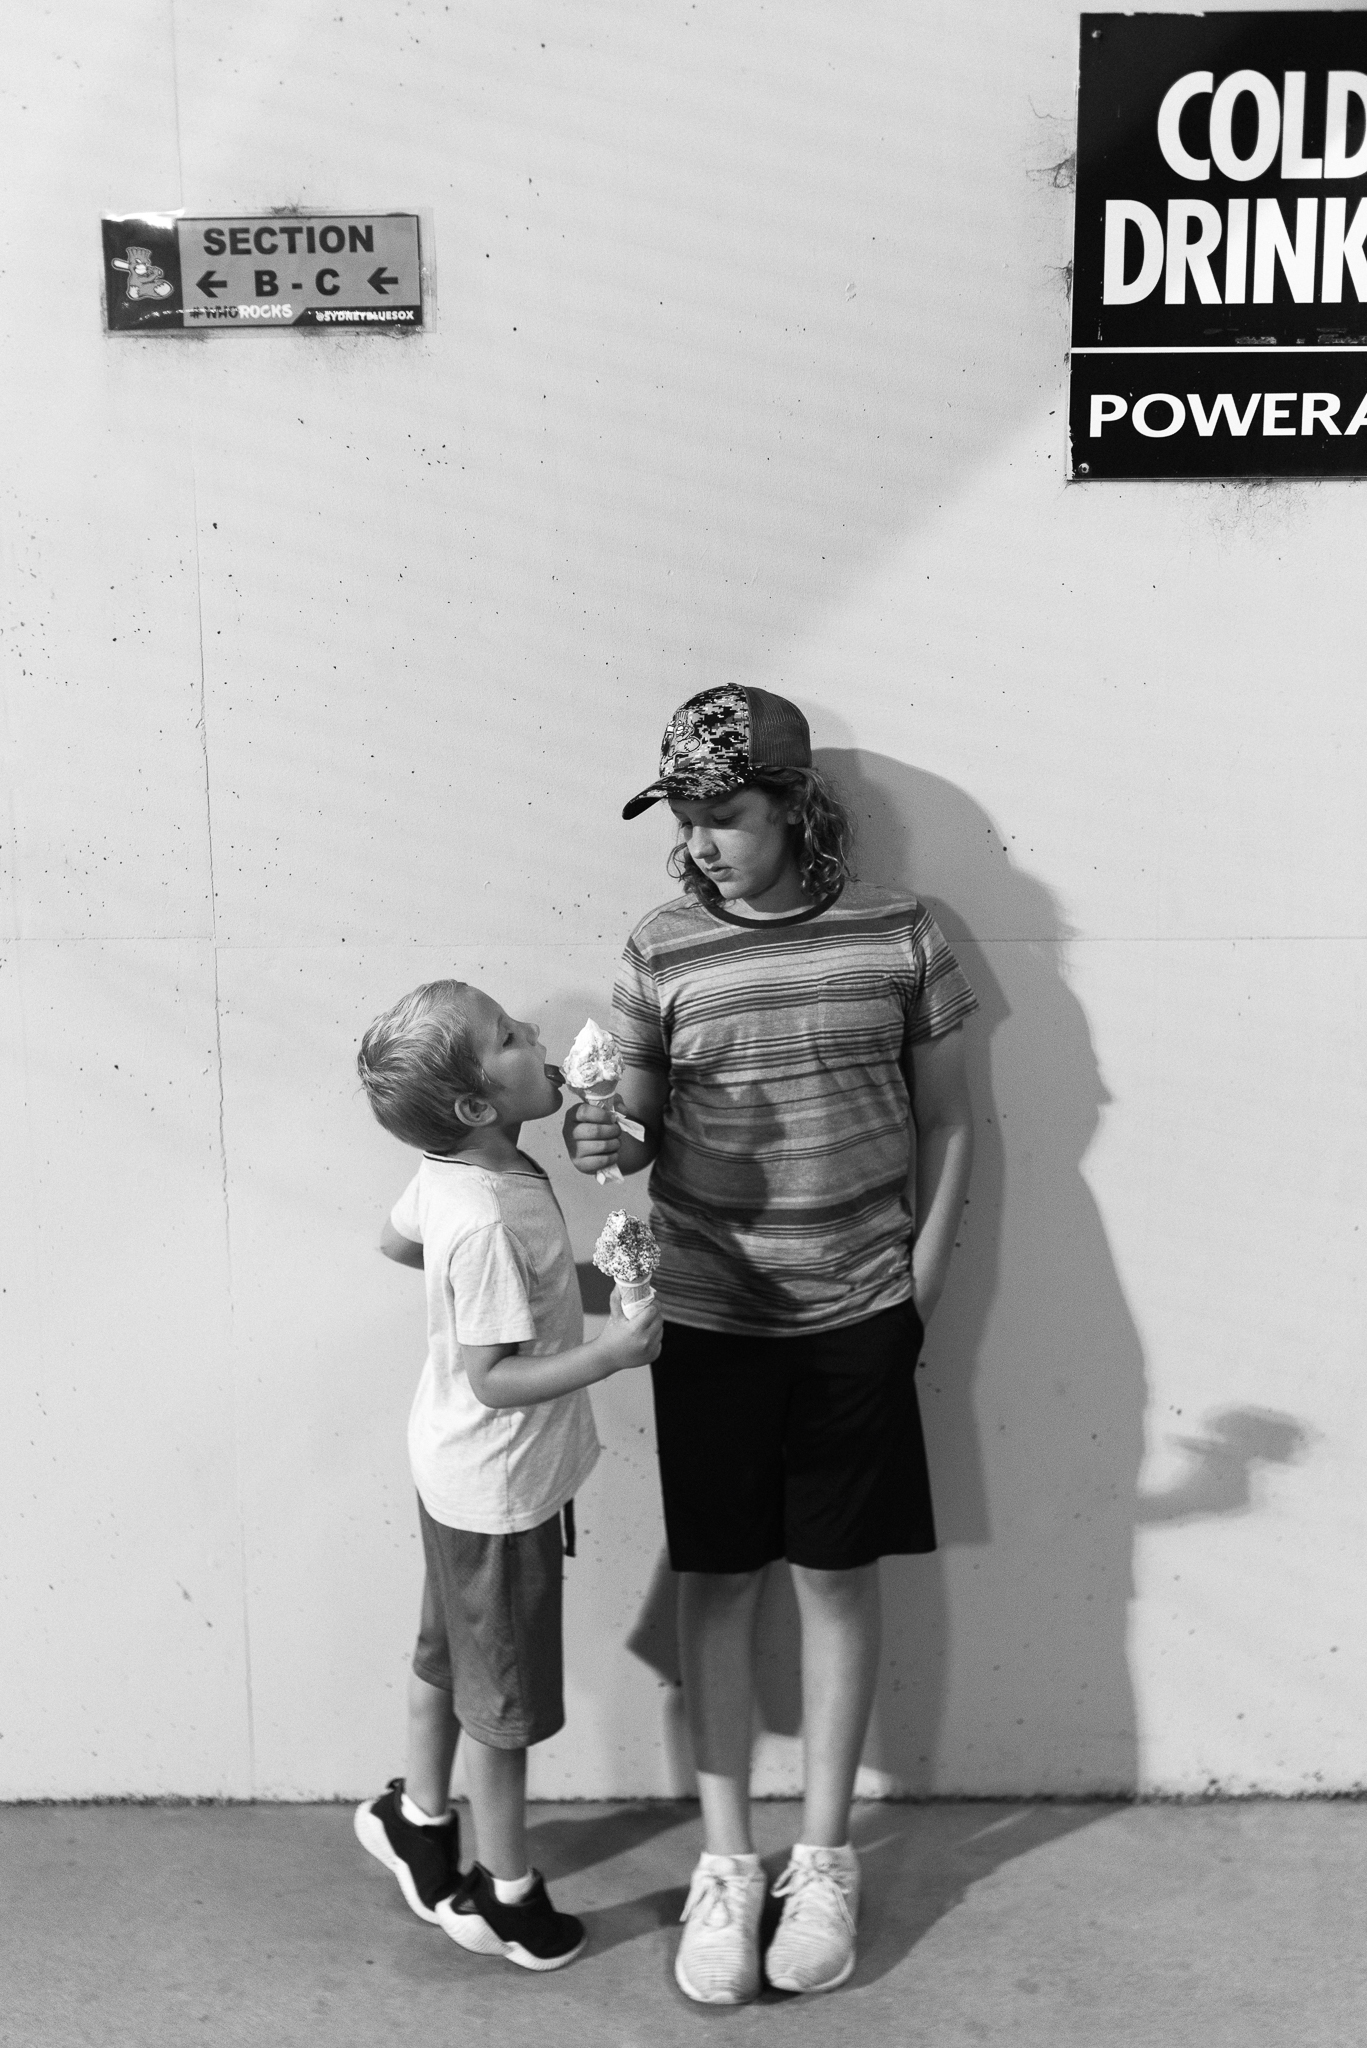 Black and white image of two young brothers eating ice cream and older brother sharing his with younger brother, as photographed by Sutherland Shire Childrens Photographer Sevenish Photography